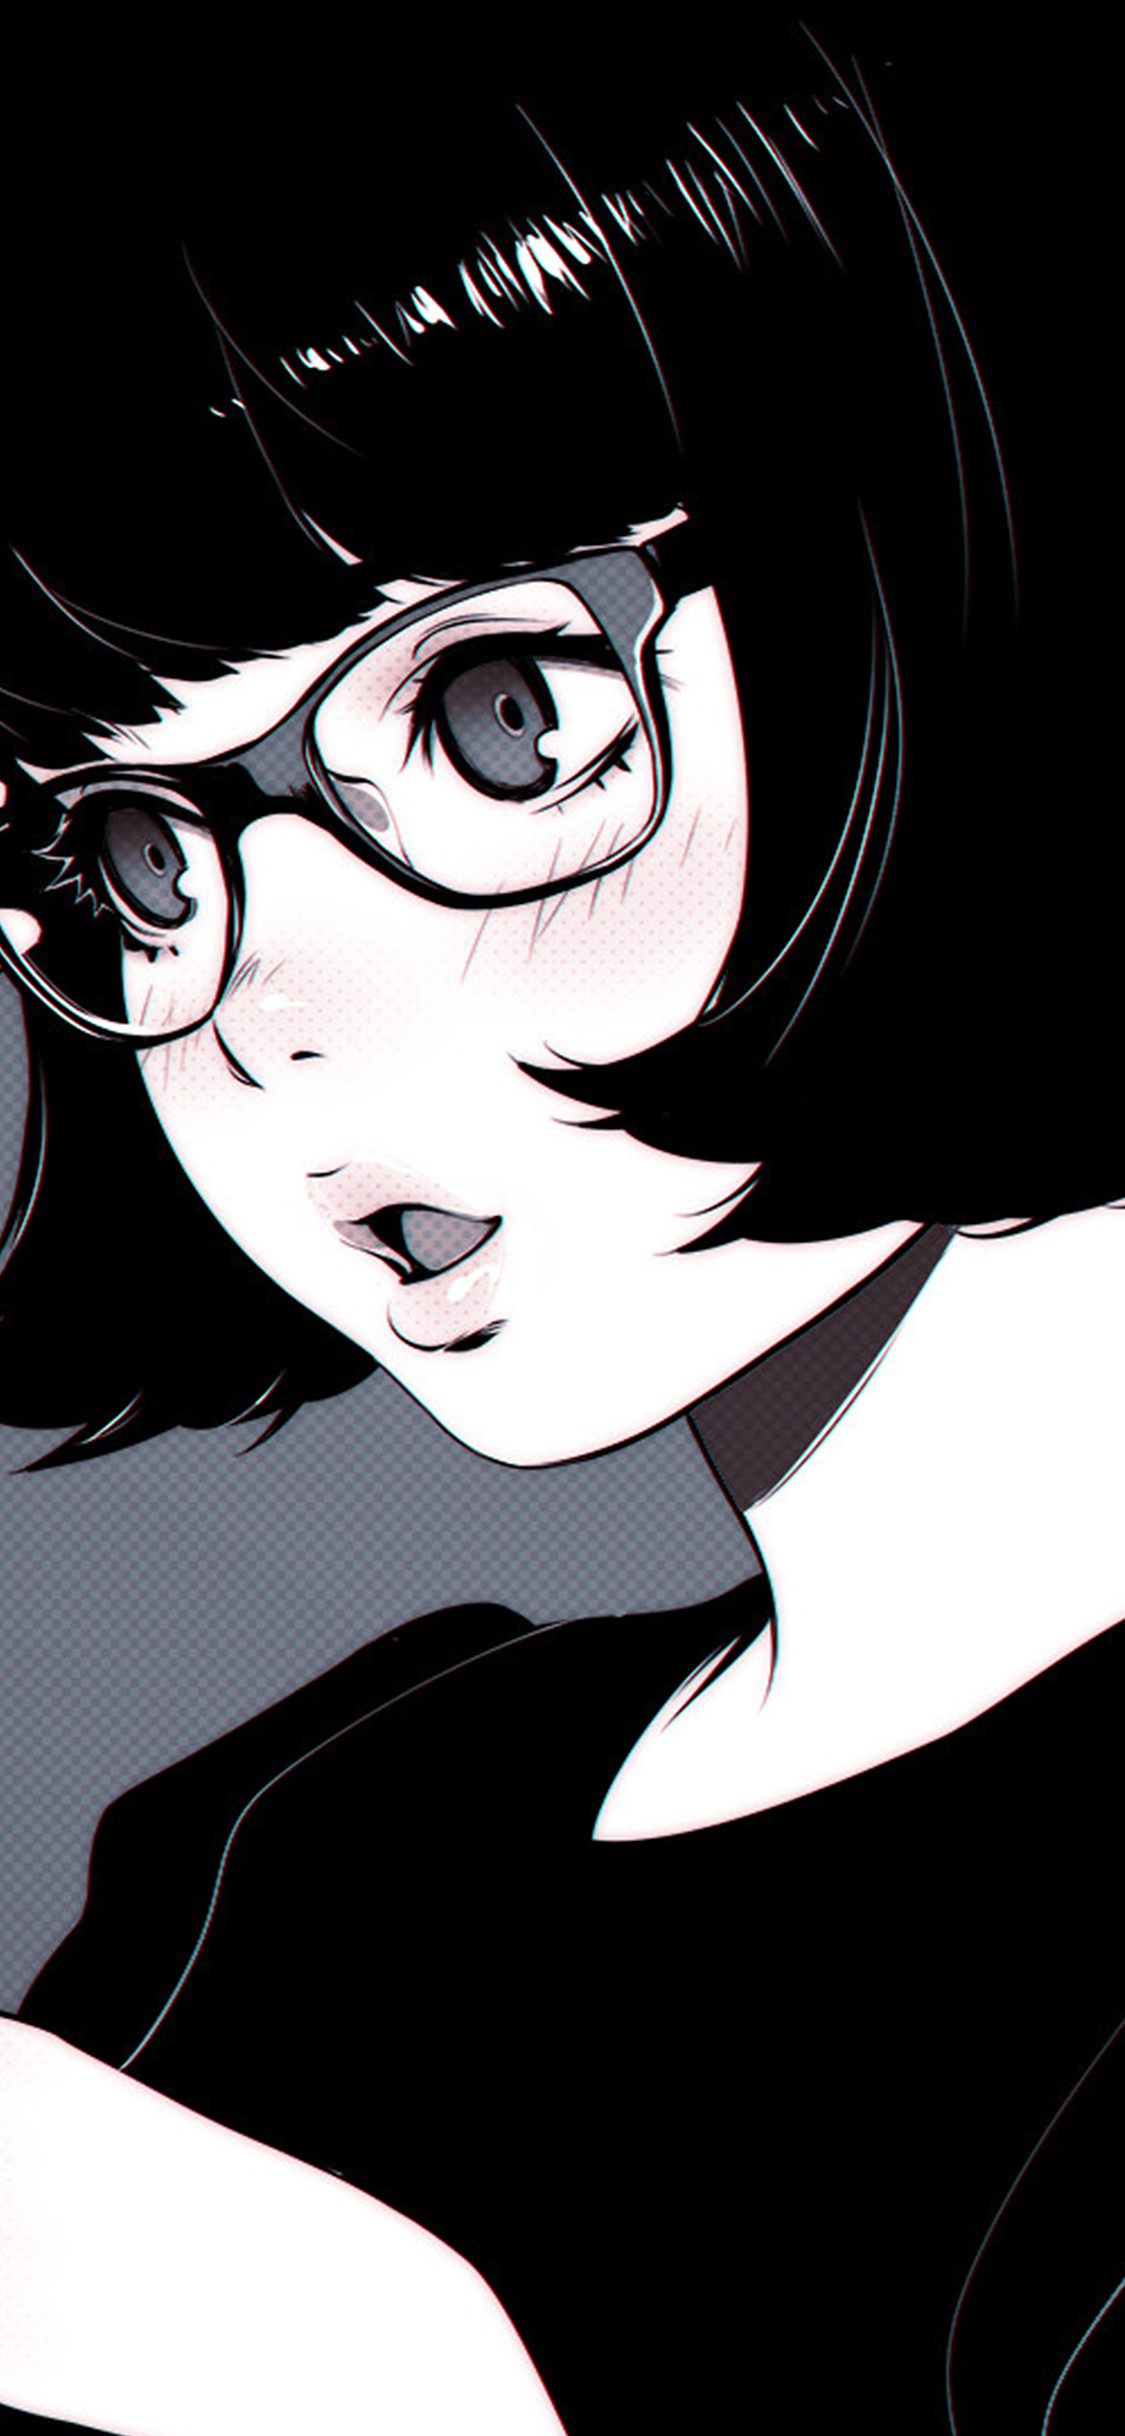 iPhoneXpapers.com-Apple-iPhone-wallpaper-aw22-girl-bw-anime-ilya-kuvshinov-illustration-art